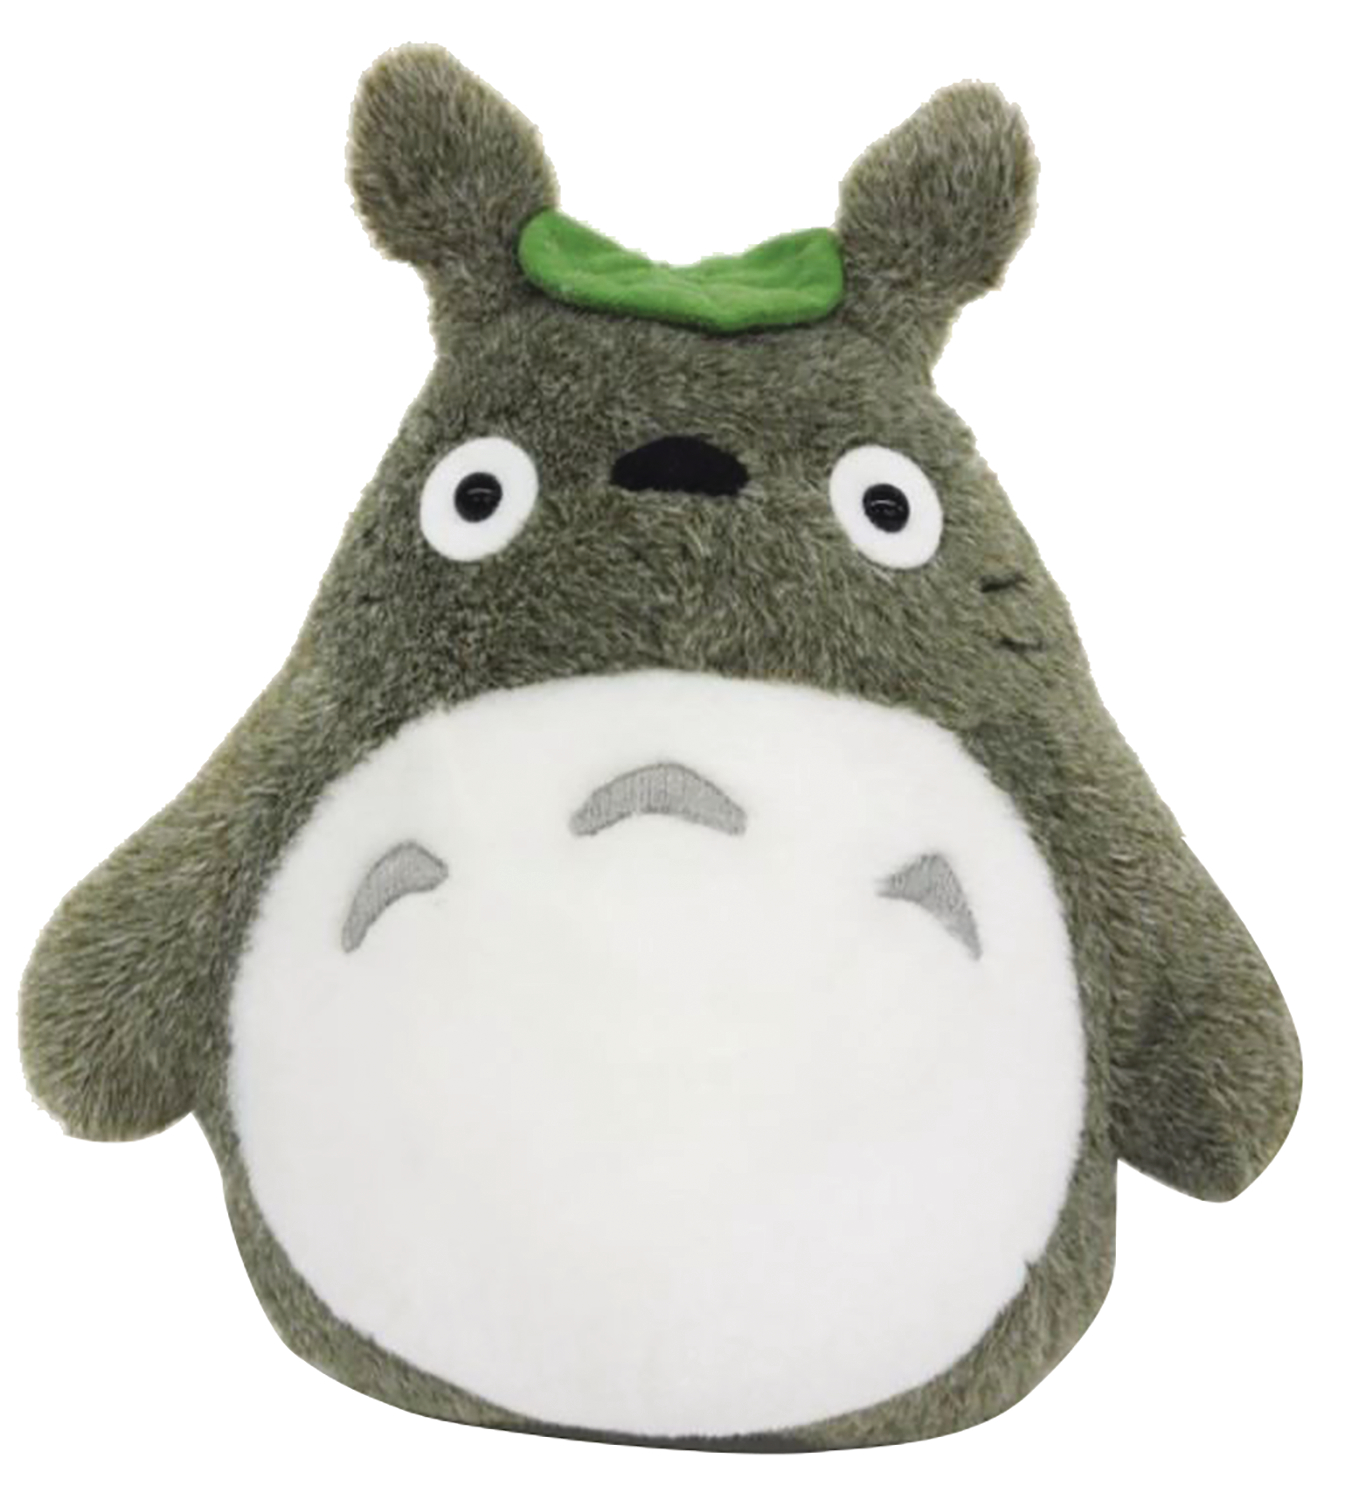 MY NEIGHBOR TOTORO 30TH ANNIVERSARY 9 IN PLUSH